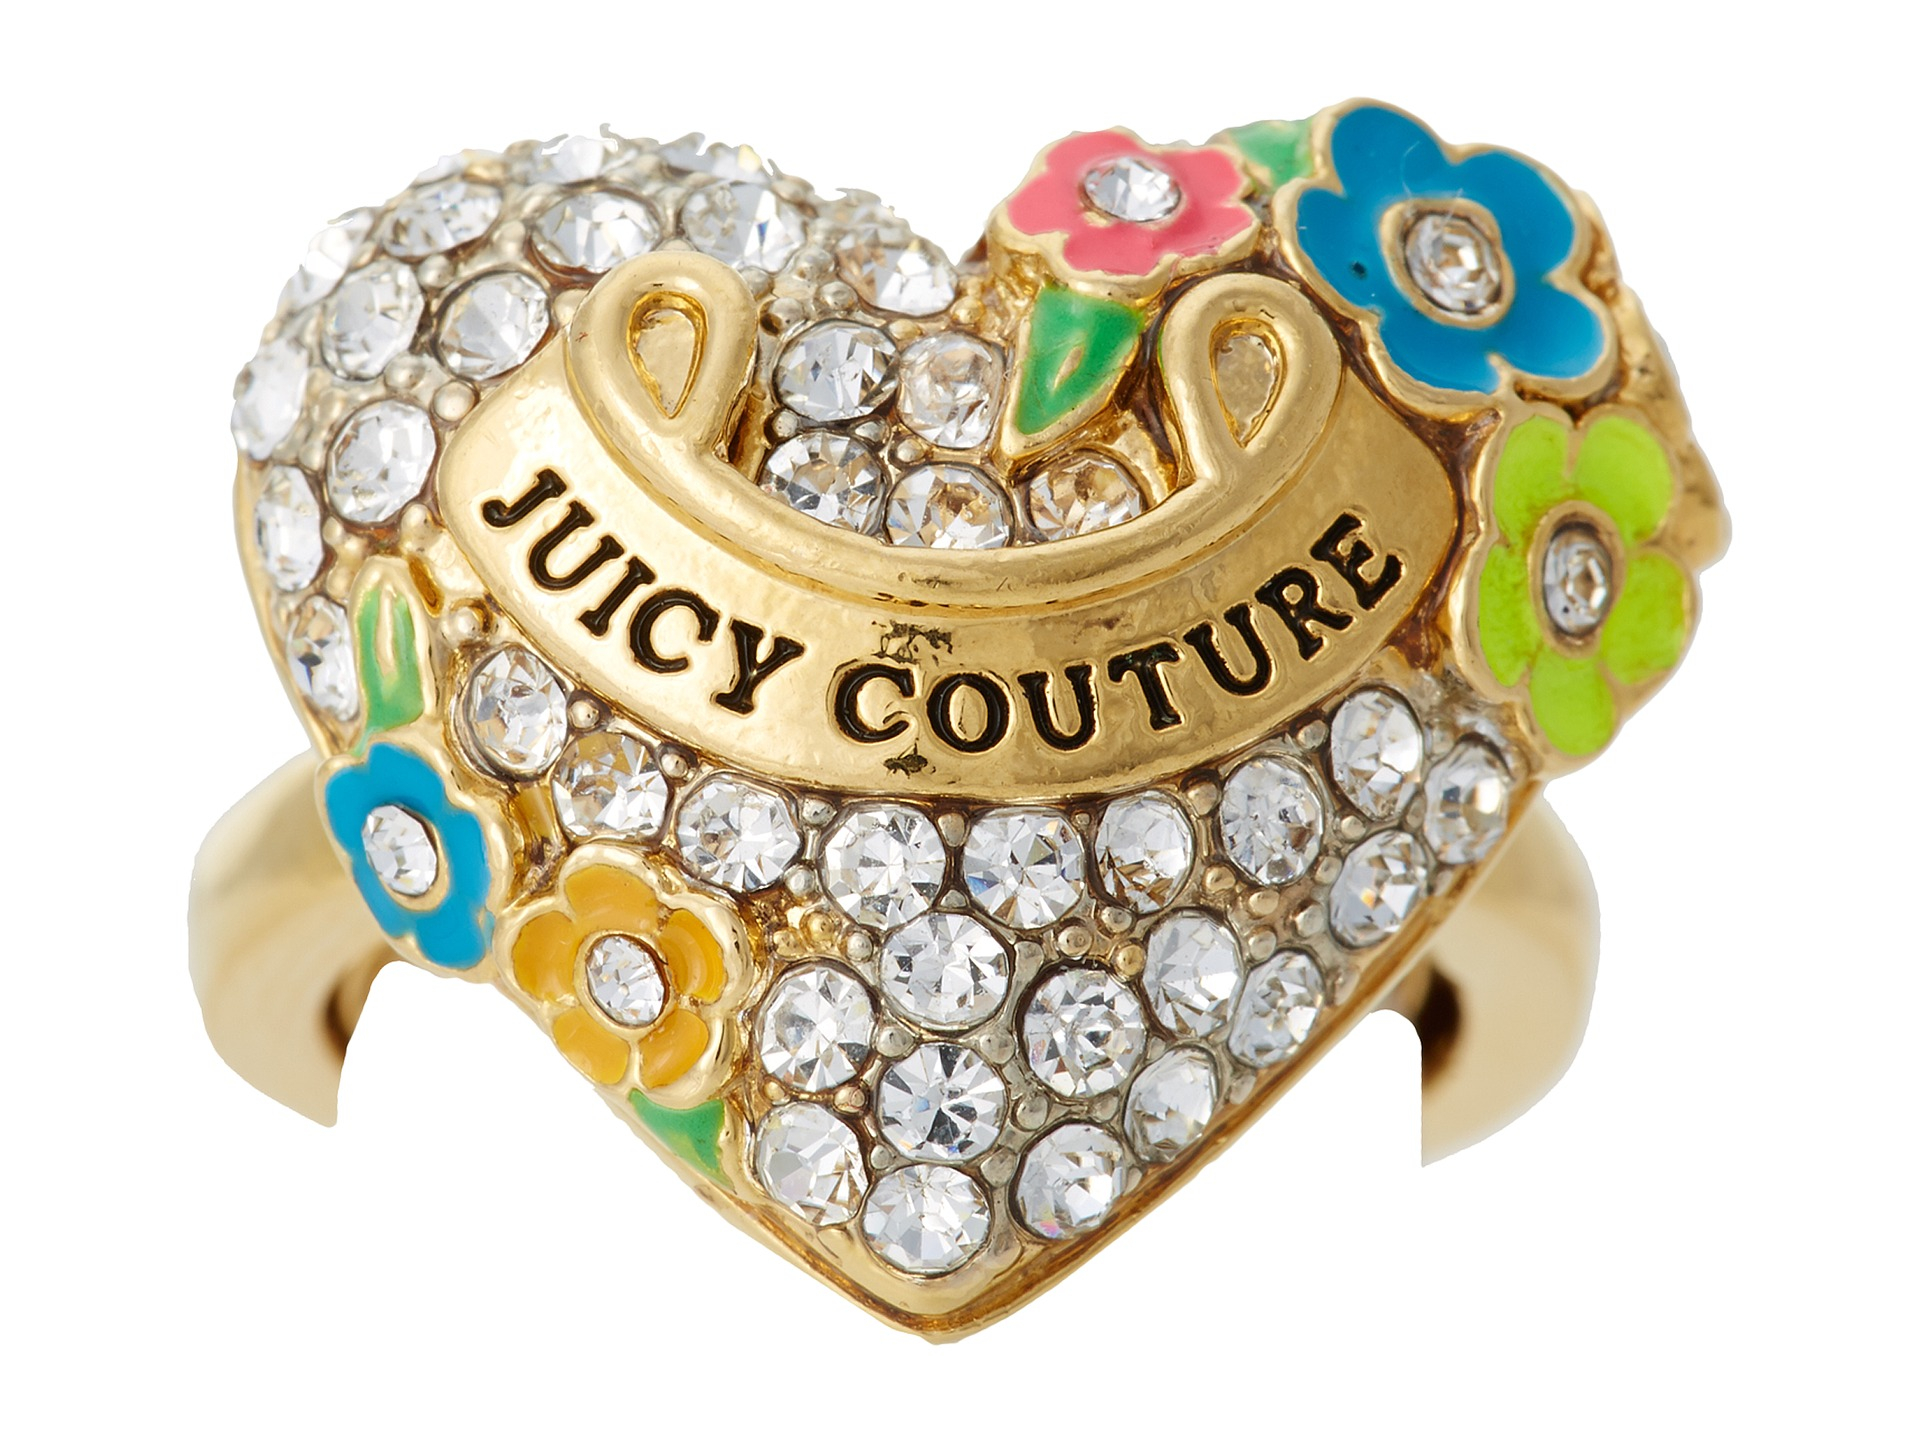 Lyst - Juicy Couture Pave Heart and Flower Ring in Metallic